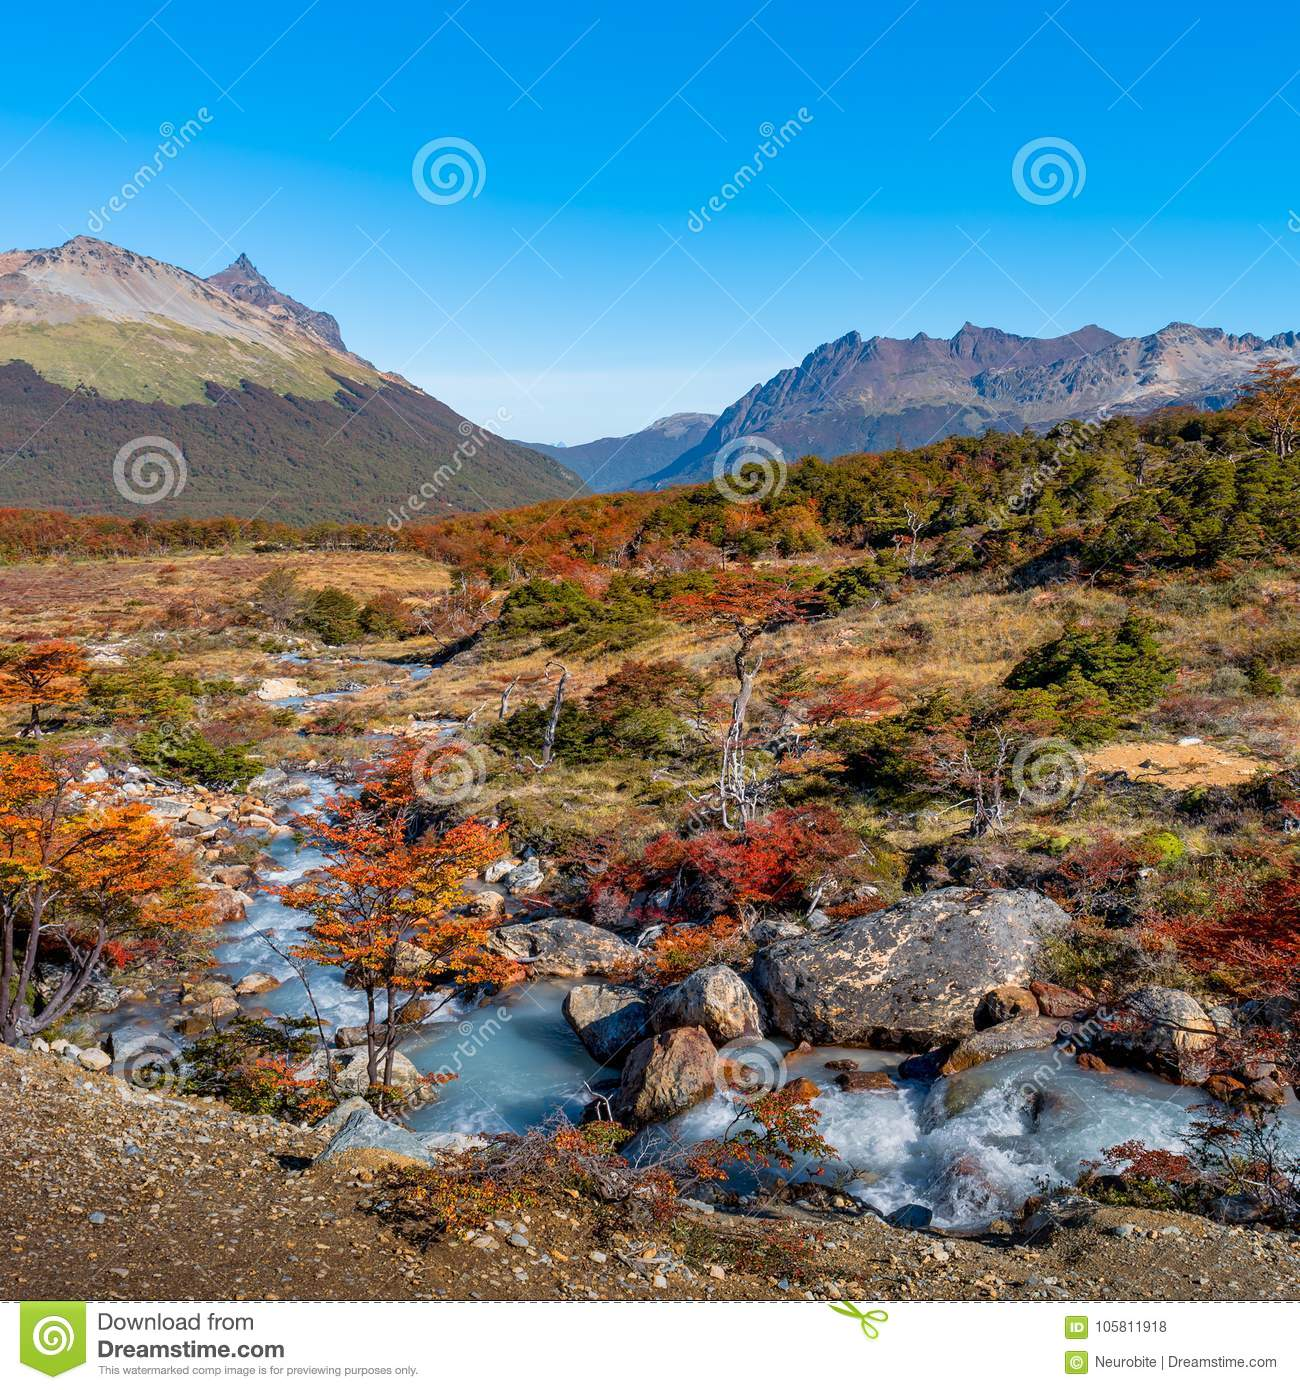 Gorgeous landscape of Patagonia`s Tierra del Fuego National Park